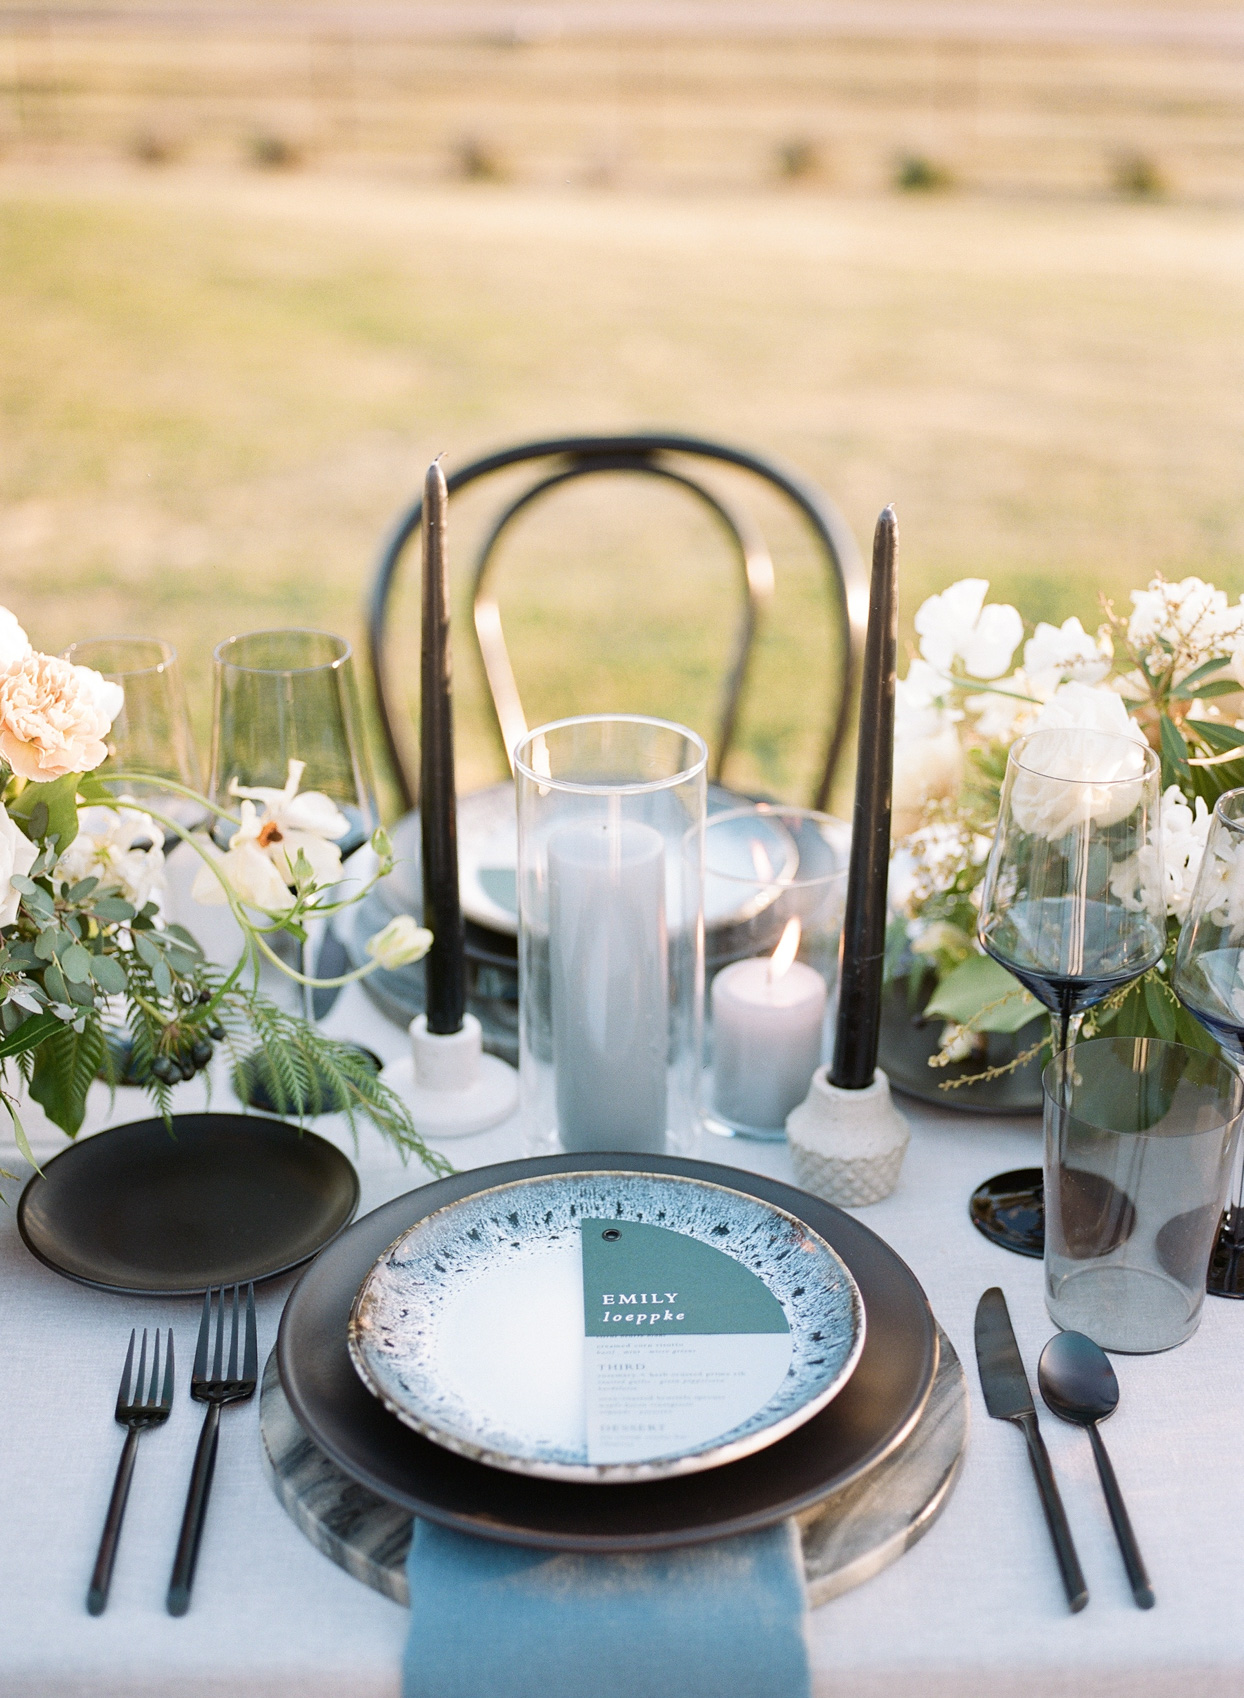 table setting with personalized menus and seating cards